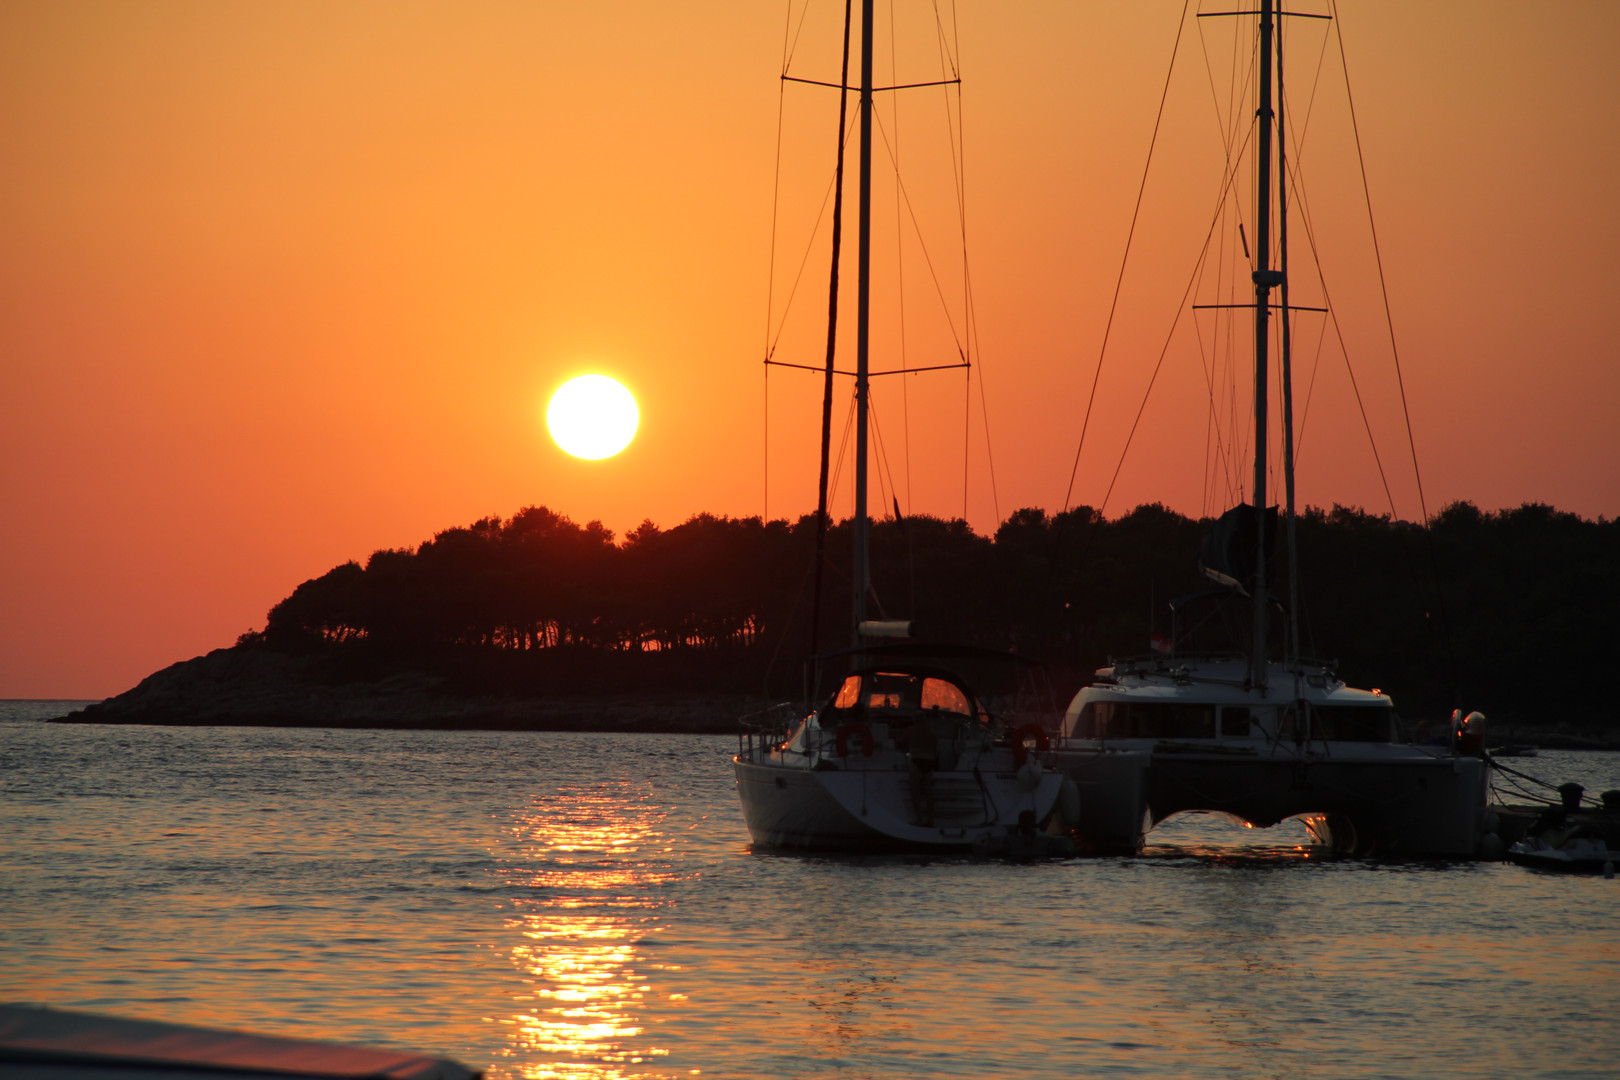 Sunset with sailboats | Maslinica